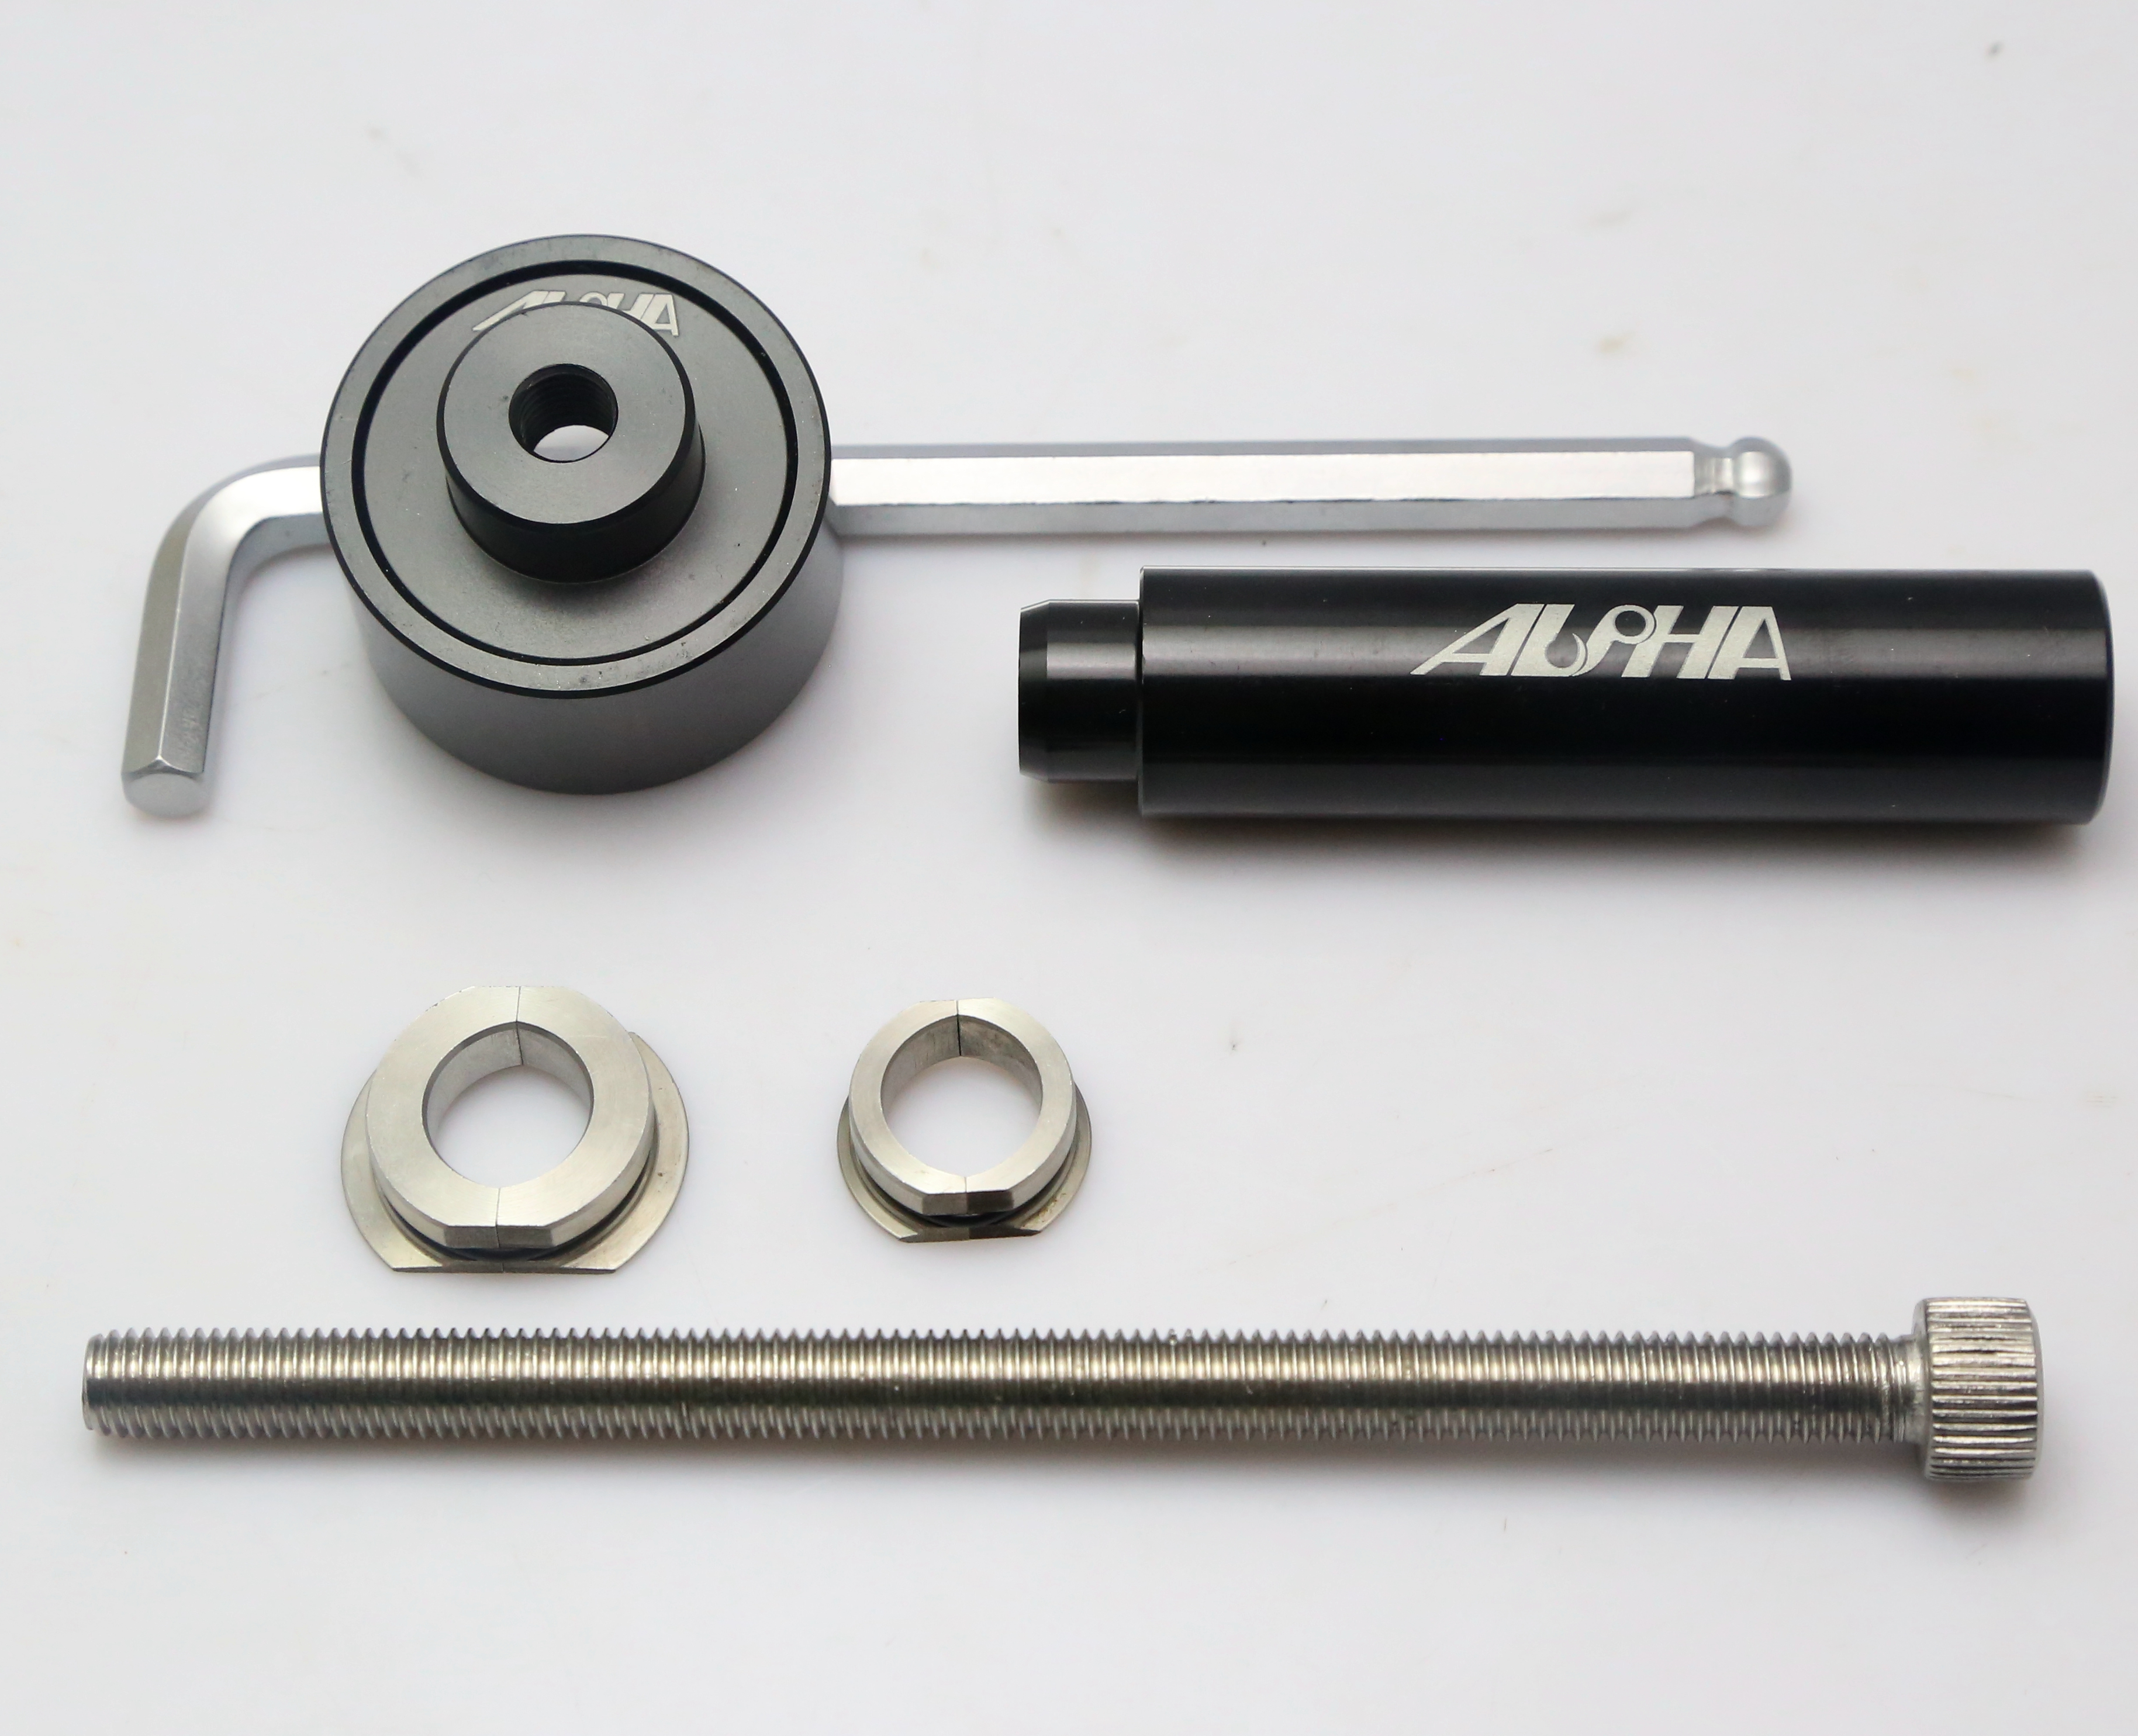 BB86/BB92/BB90/bb91/BB30 Bb386 Pf30 Bottom Bracket Remove TOOL